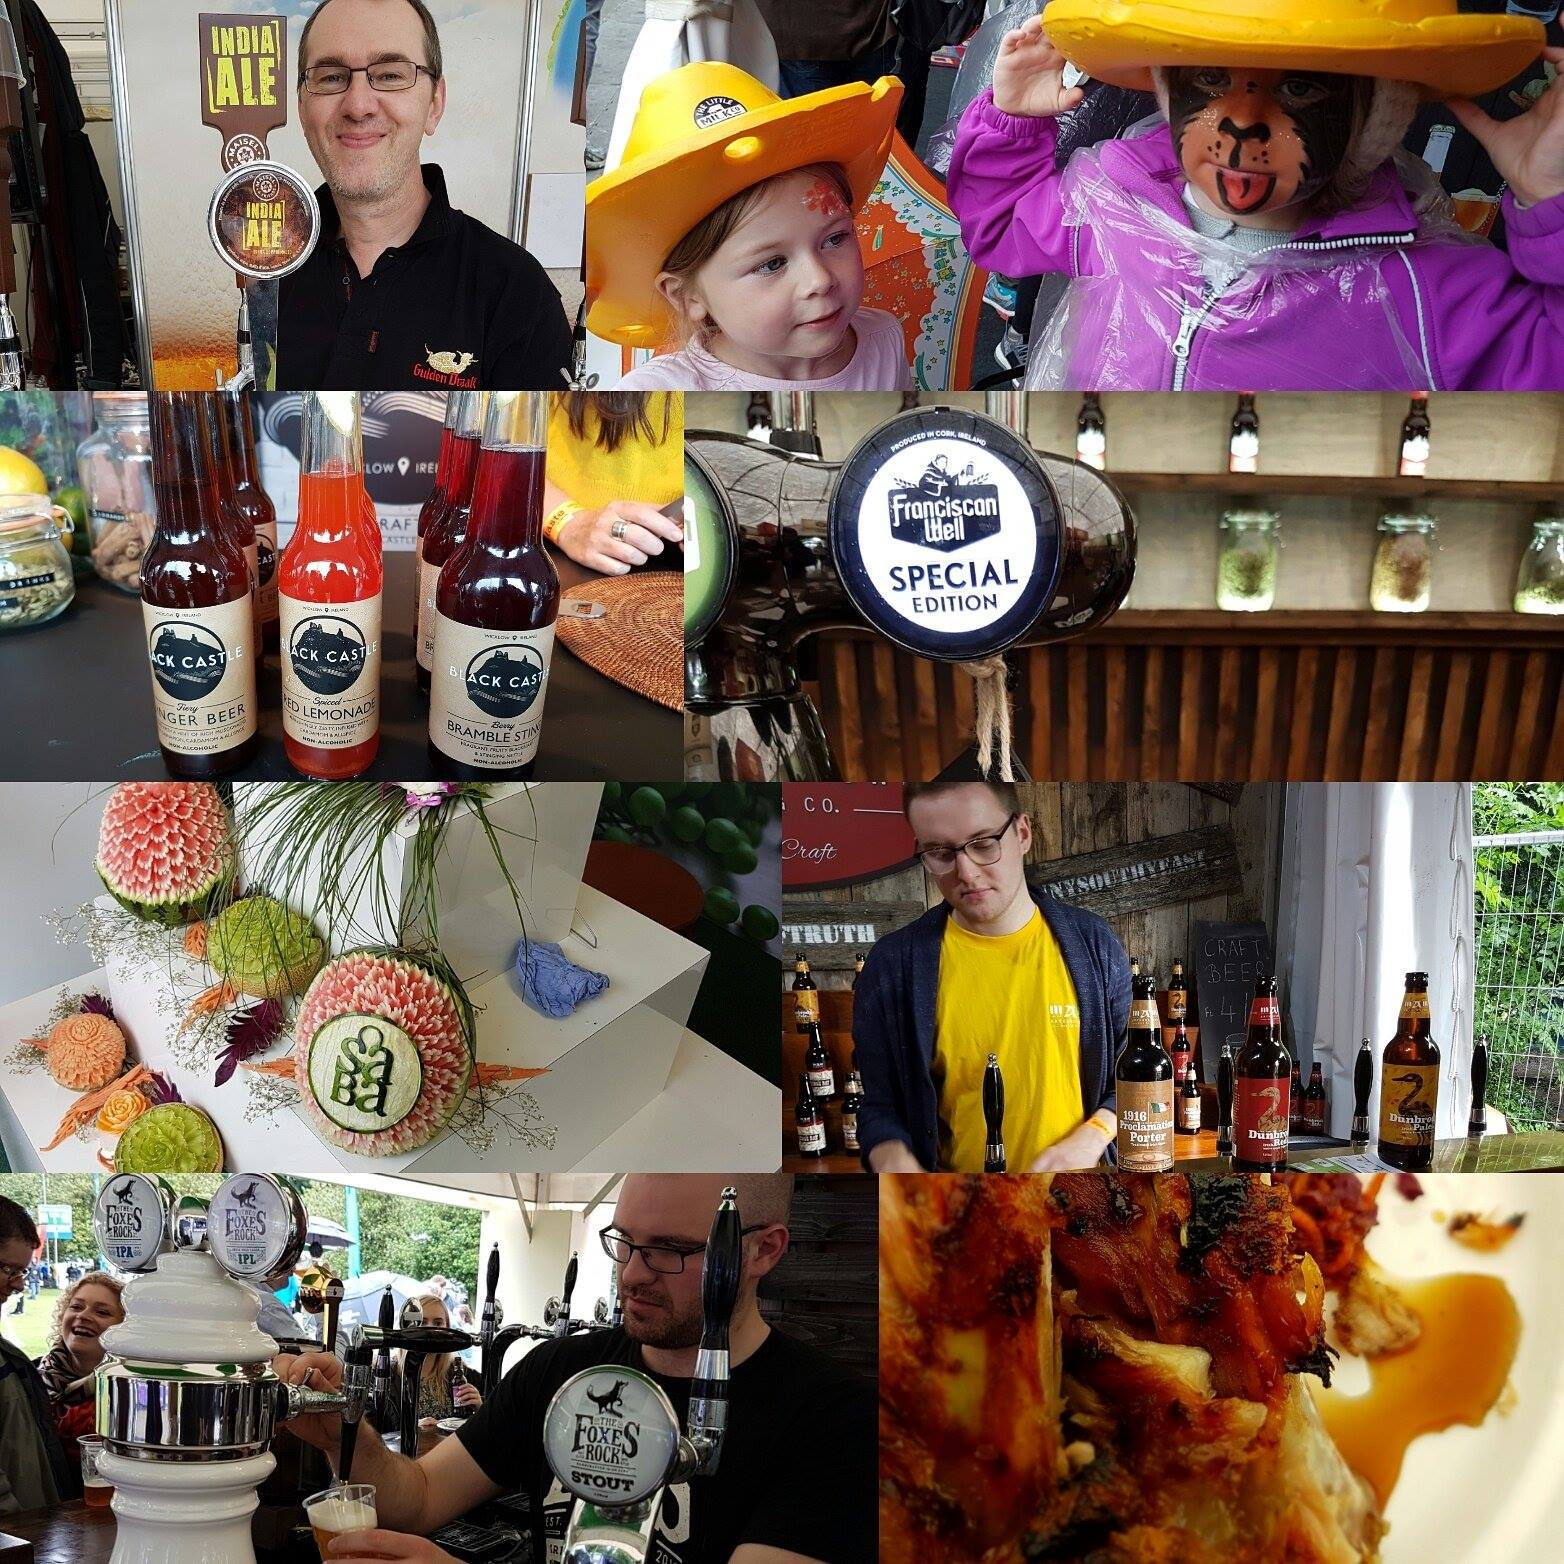 We were mentioned by the craft beer blog Simon Say's Beer, where our crafts sodas stood along side some great brews!http://simonsaysbeer.com/2016/06/19/taste-of-dublin/